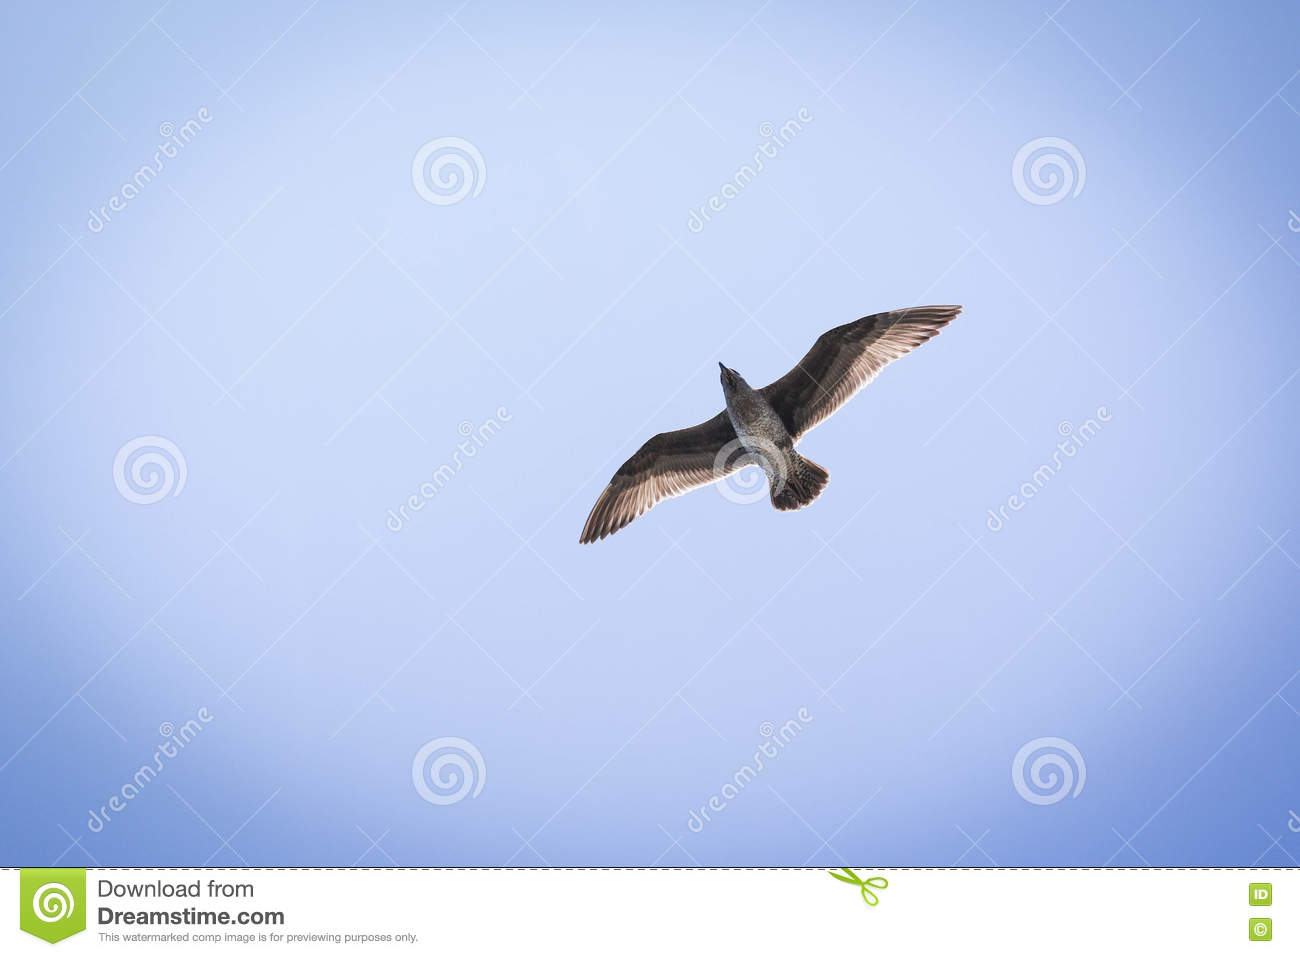 Seagull in flight against a blue sky with sunlight through feathers